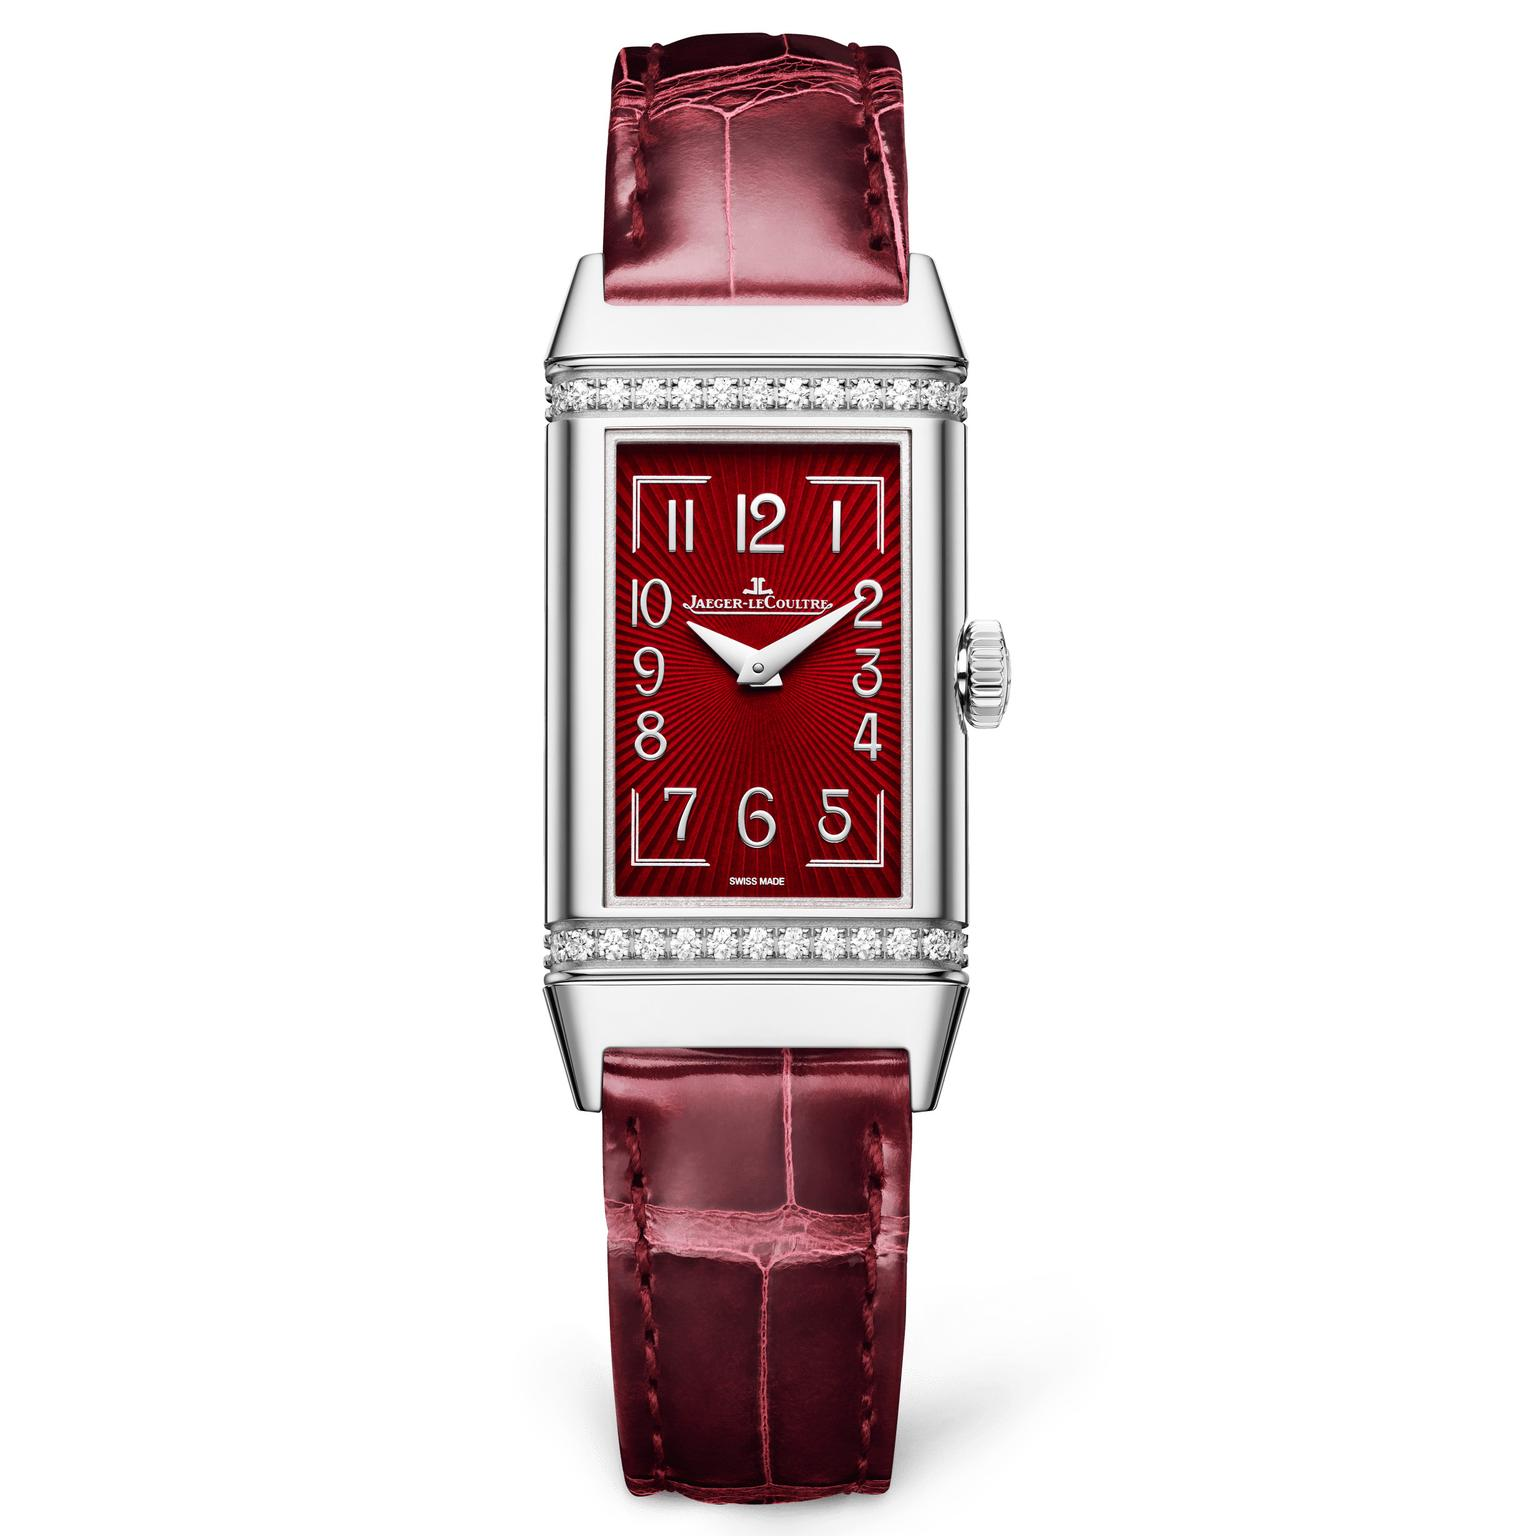 Jaeger-LeCoultre Reverso One on white backgound